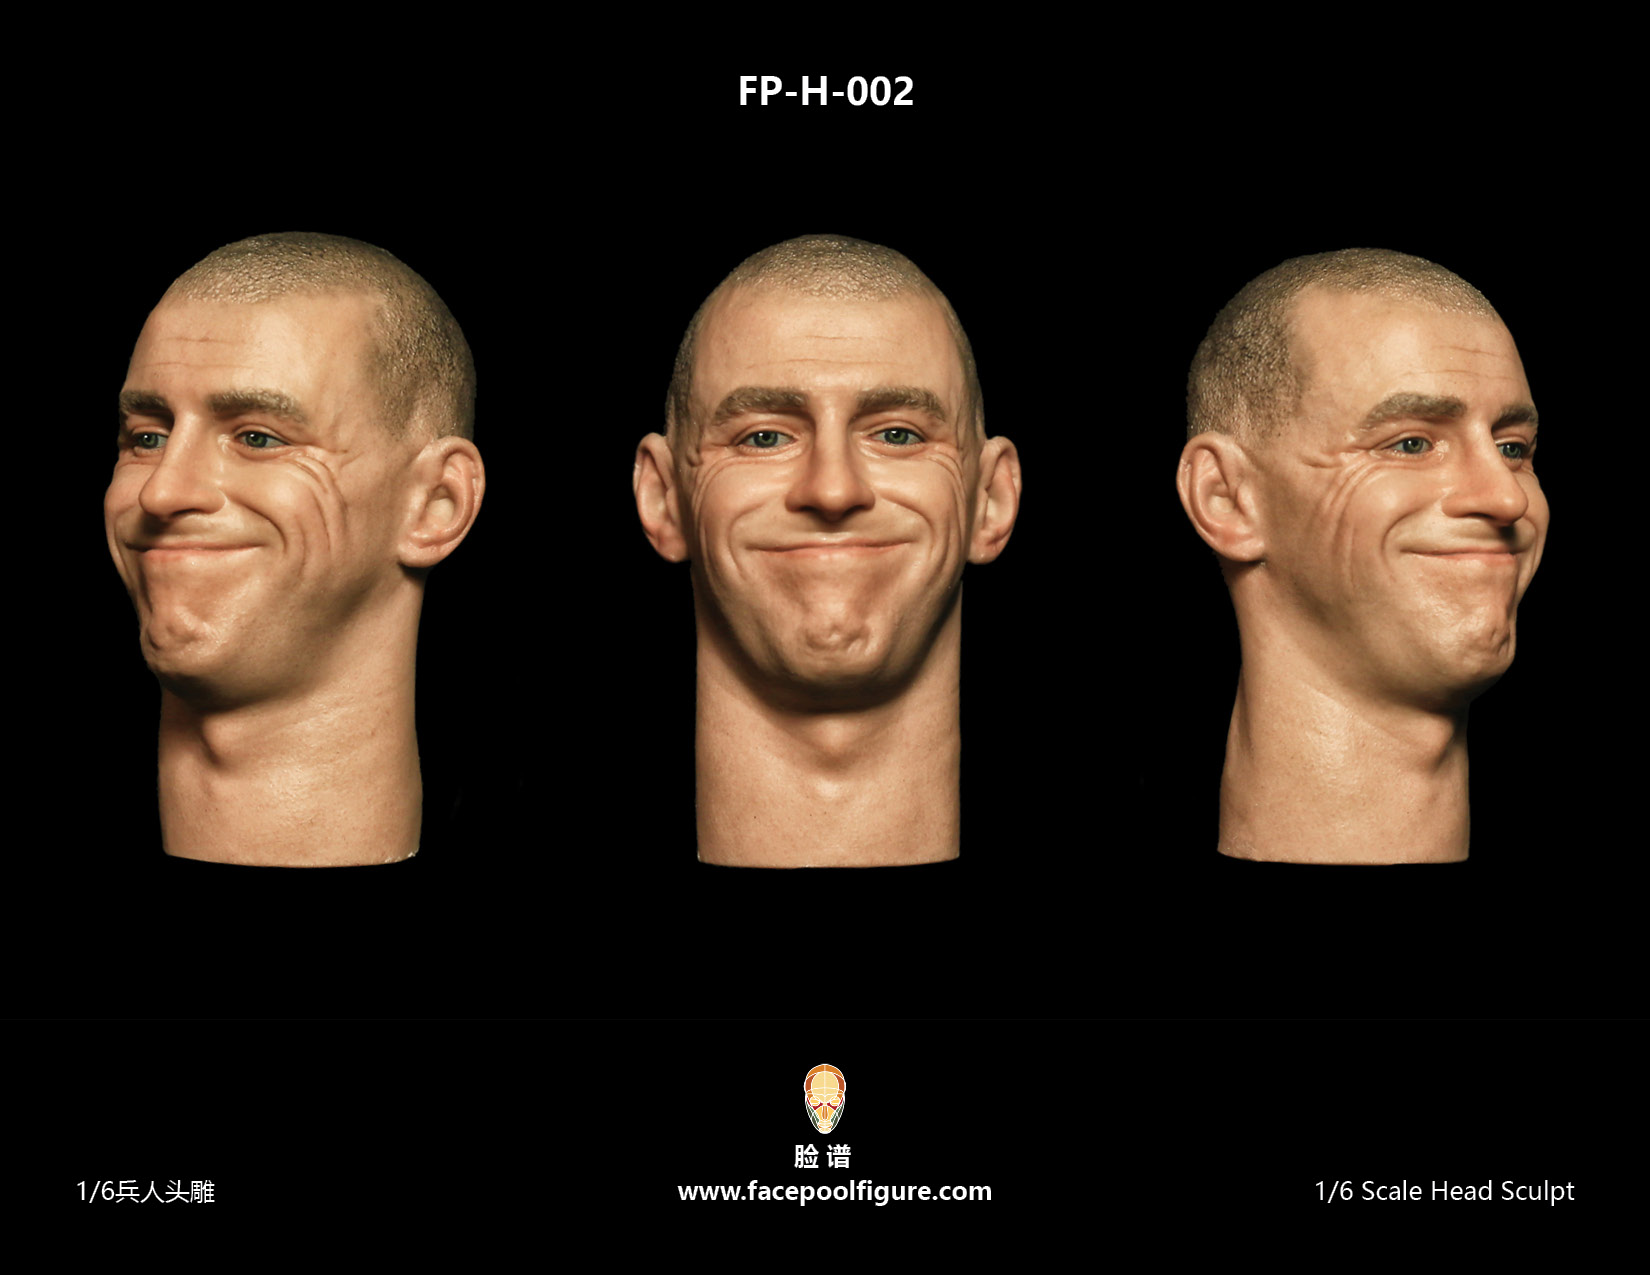 FacepoolFigure 1/6 Male Head Sculpt With Expression FP-H-002